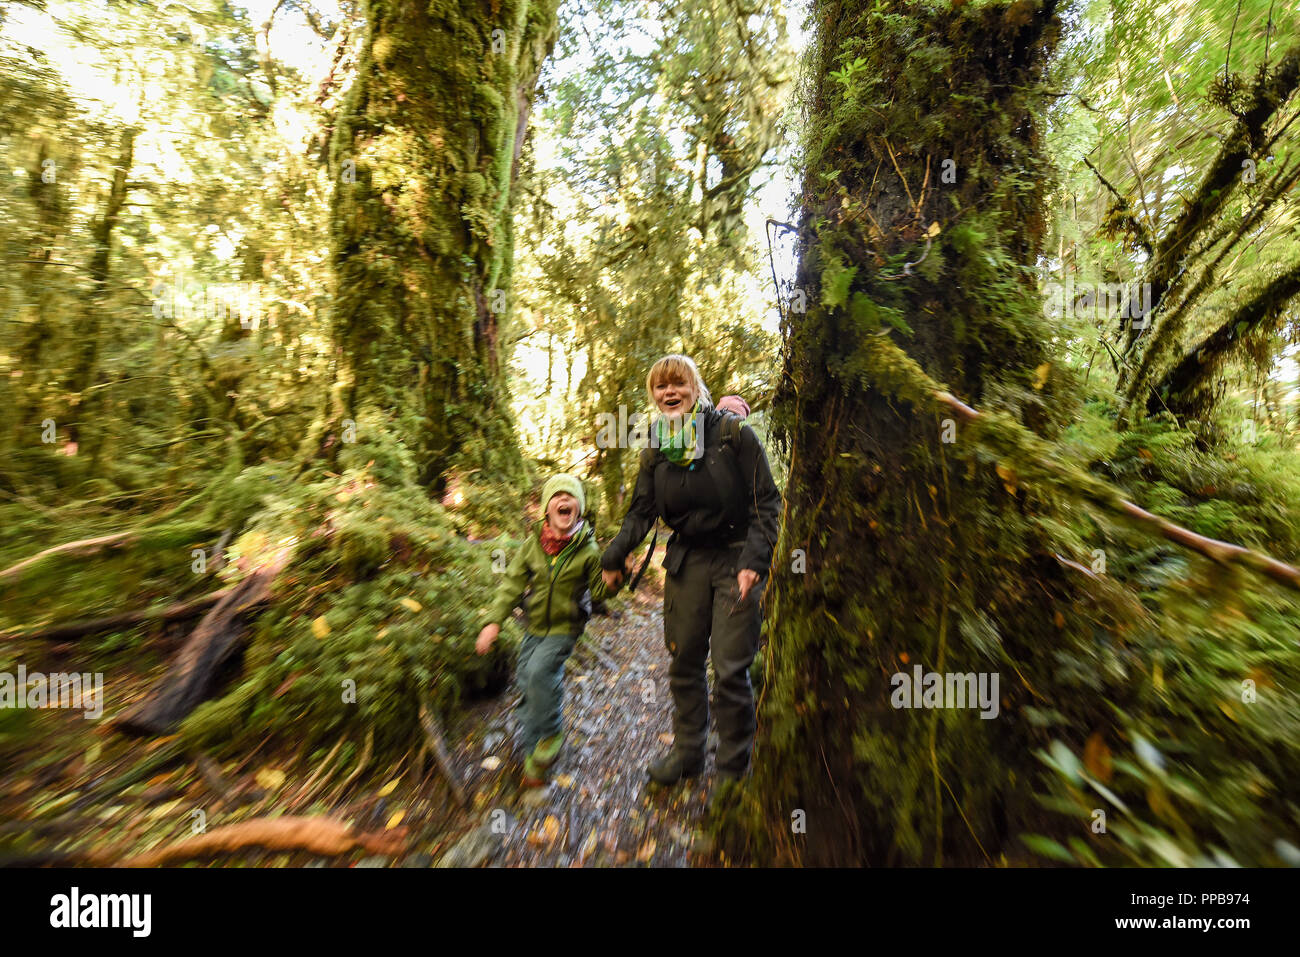 Mother with child hiking in El Bosque Encantado, temperate rainforest with moss and lichen, Carretera Austral - Stock Image